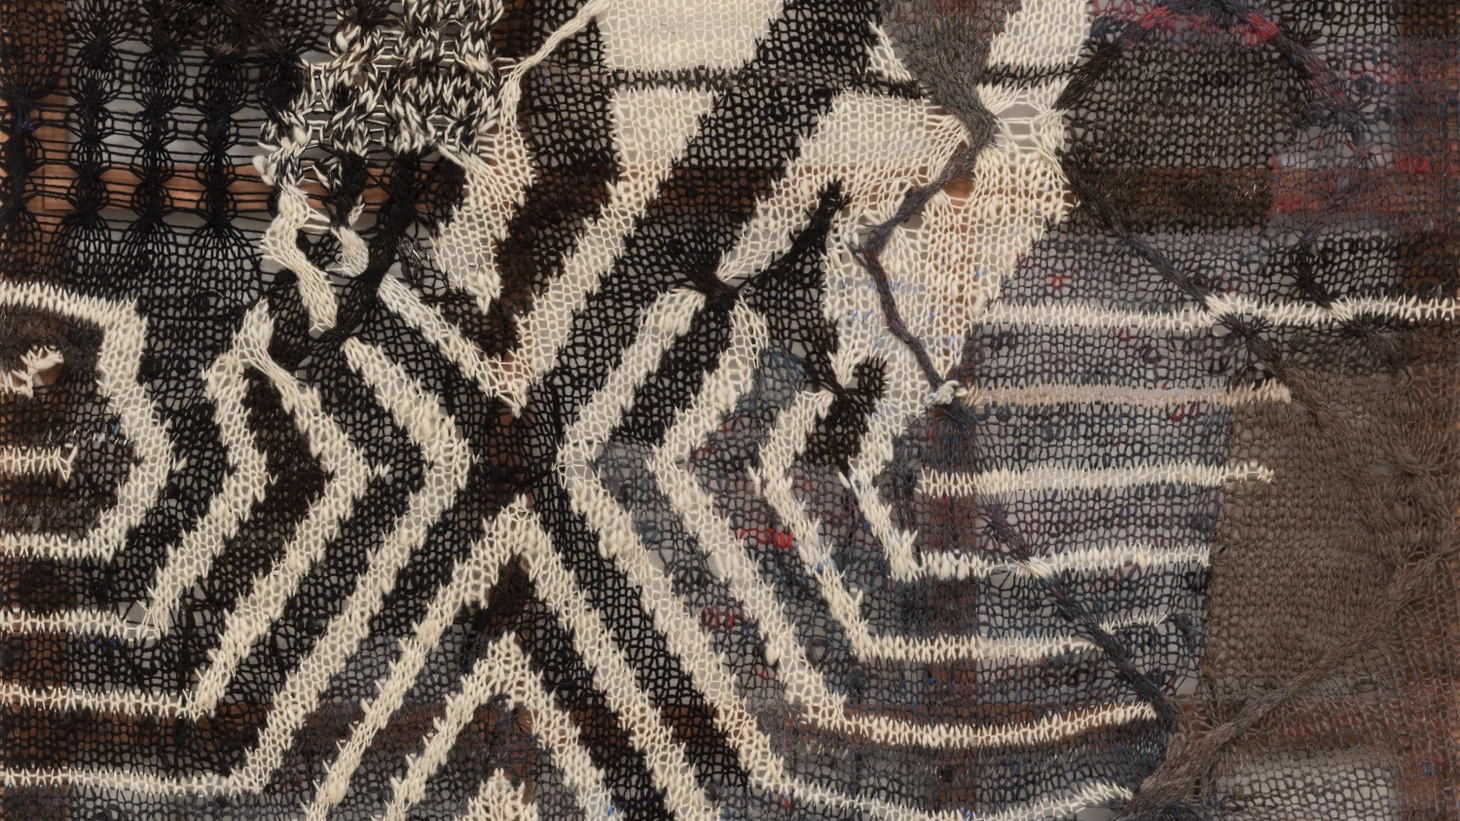 Hunter Drohojowska-Philp says the artist's knitted paintings are rich with complex meanings.